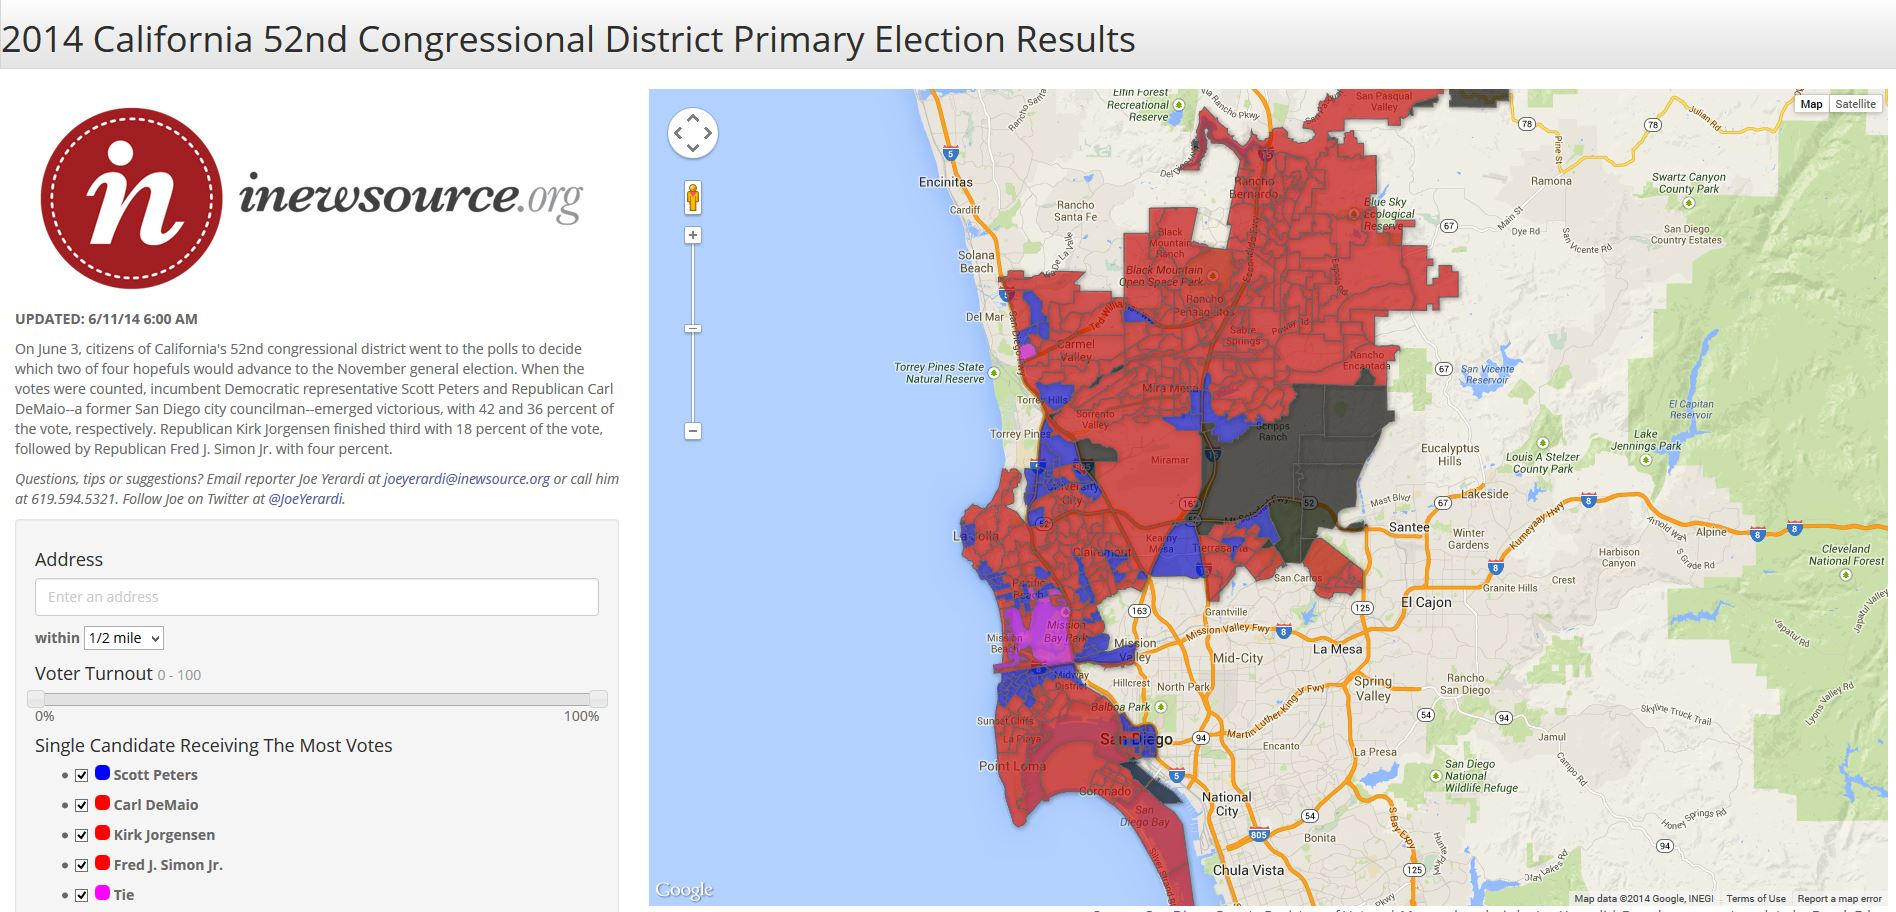 Map Of California Election Results.2014 California 52nd Congressional District Primary Election Results